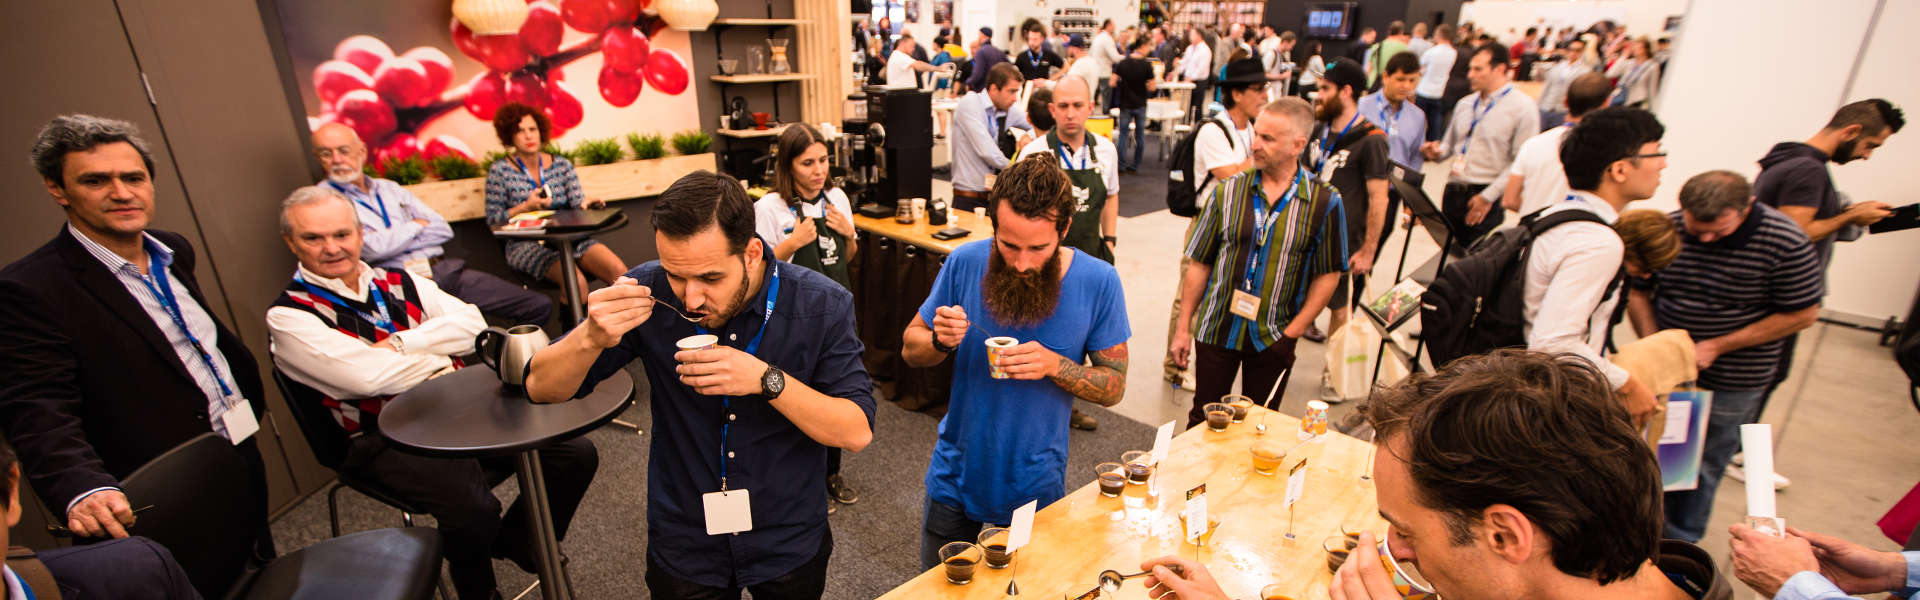 MICE2015-Best-of-Show-35-of-273